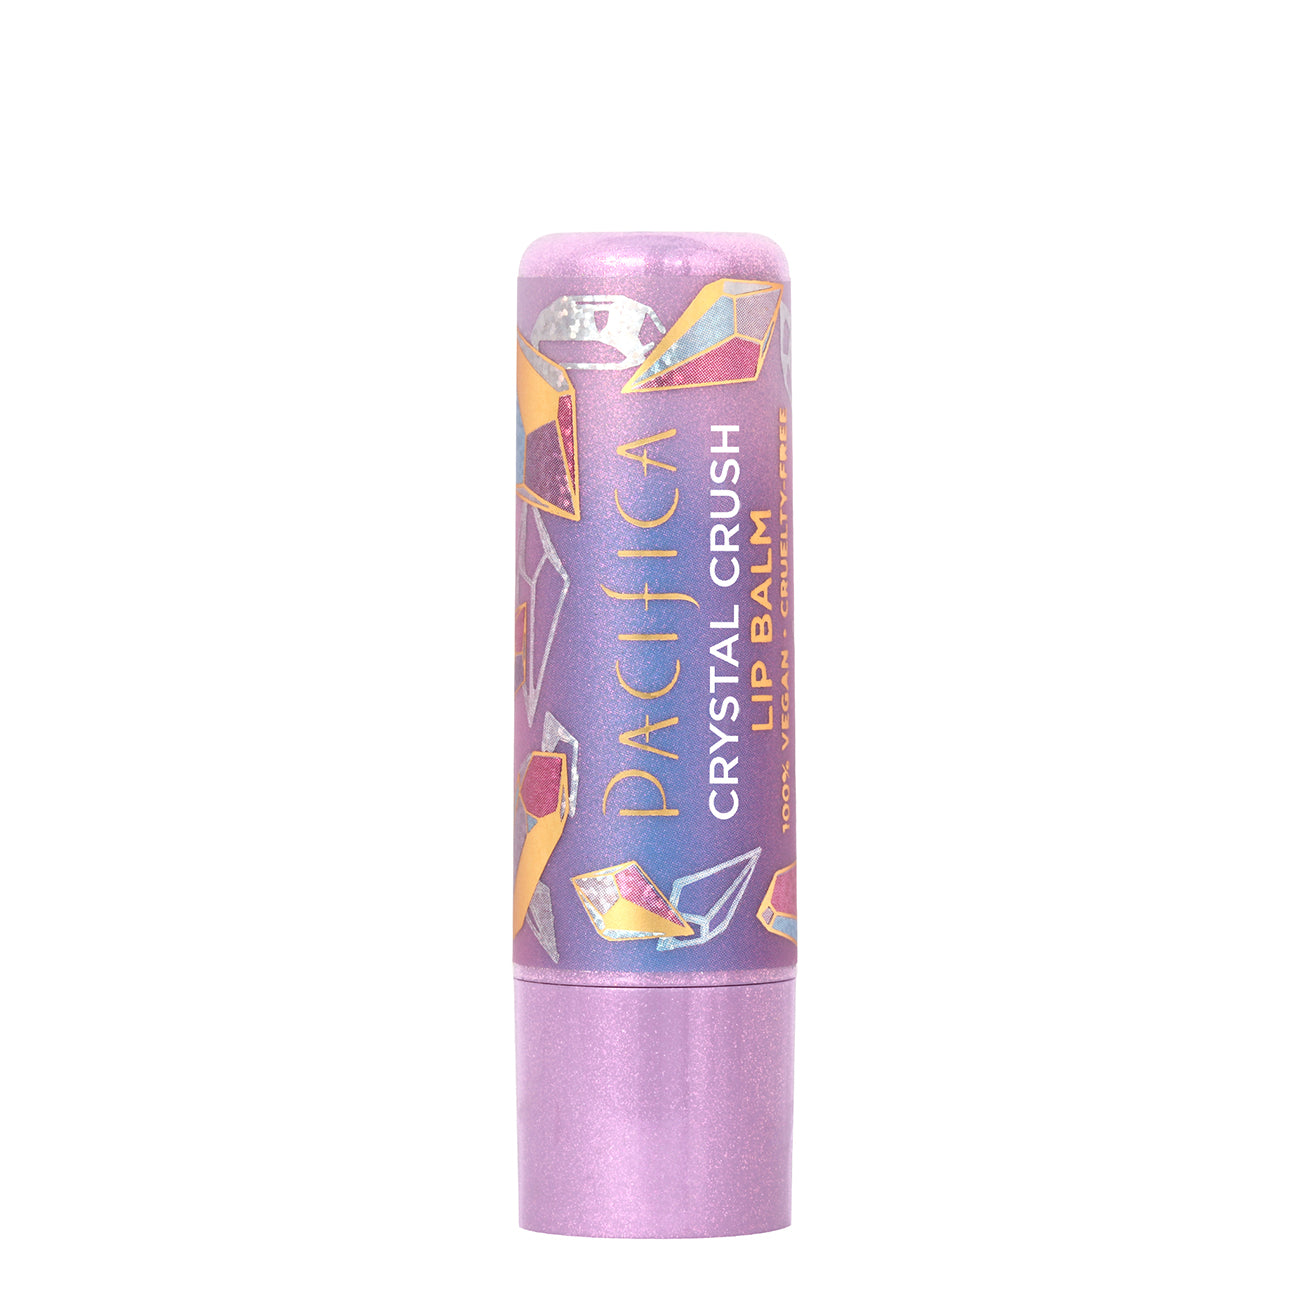 Crystal Crush Lip Balm